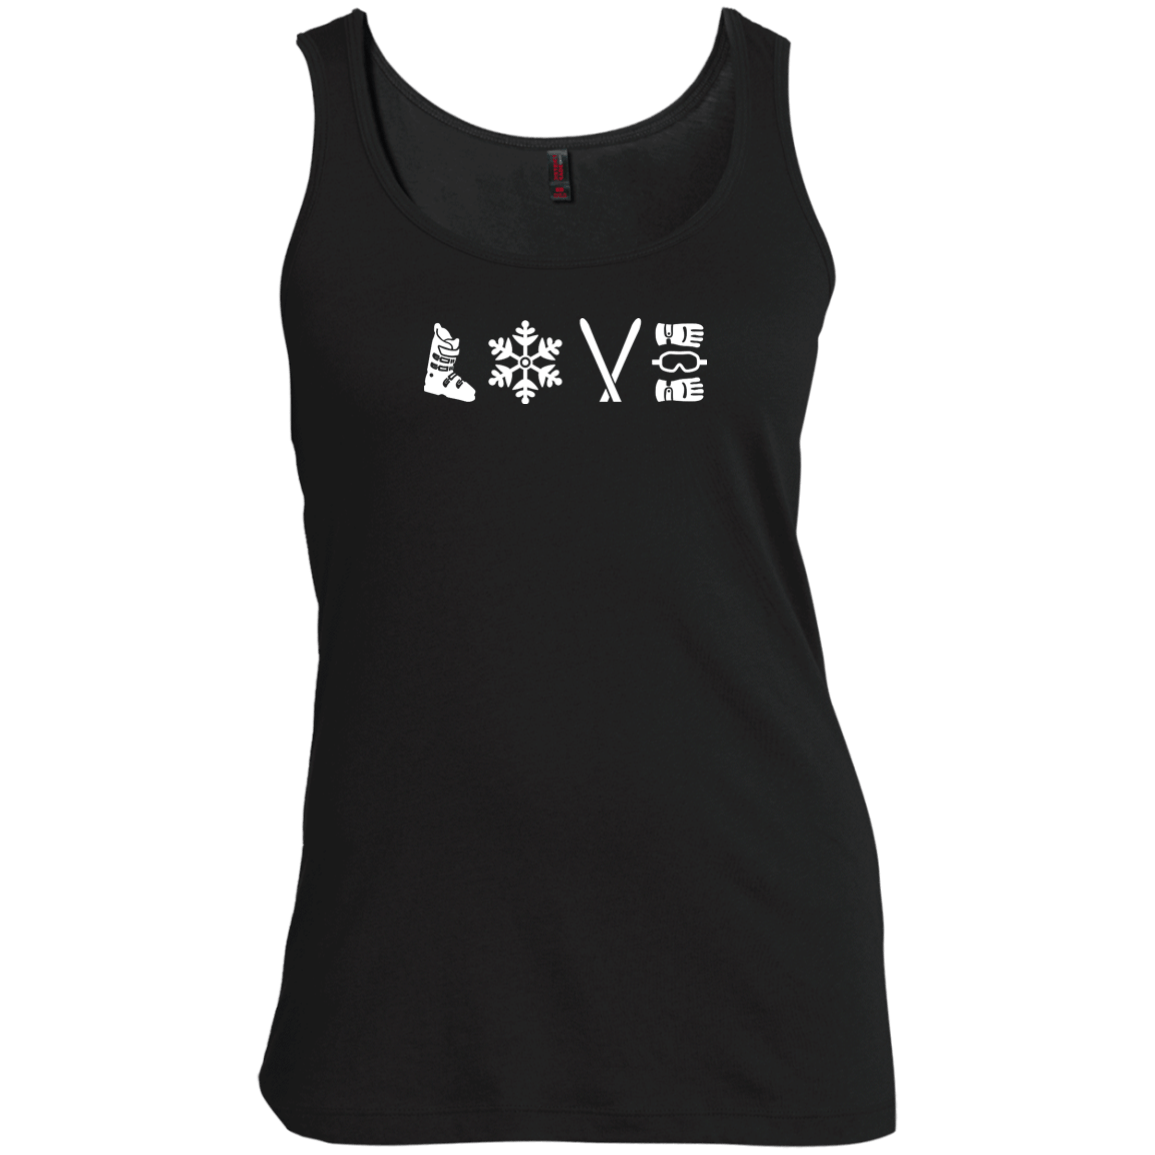 Love Ski - Tank Tops - Powderaddicts